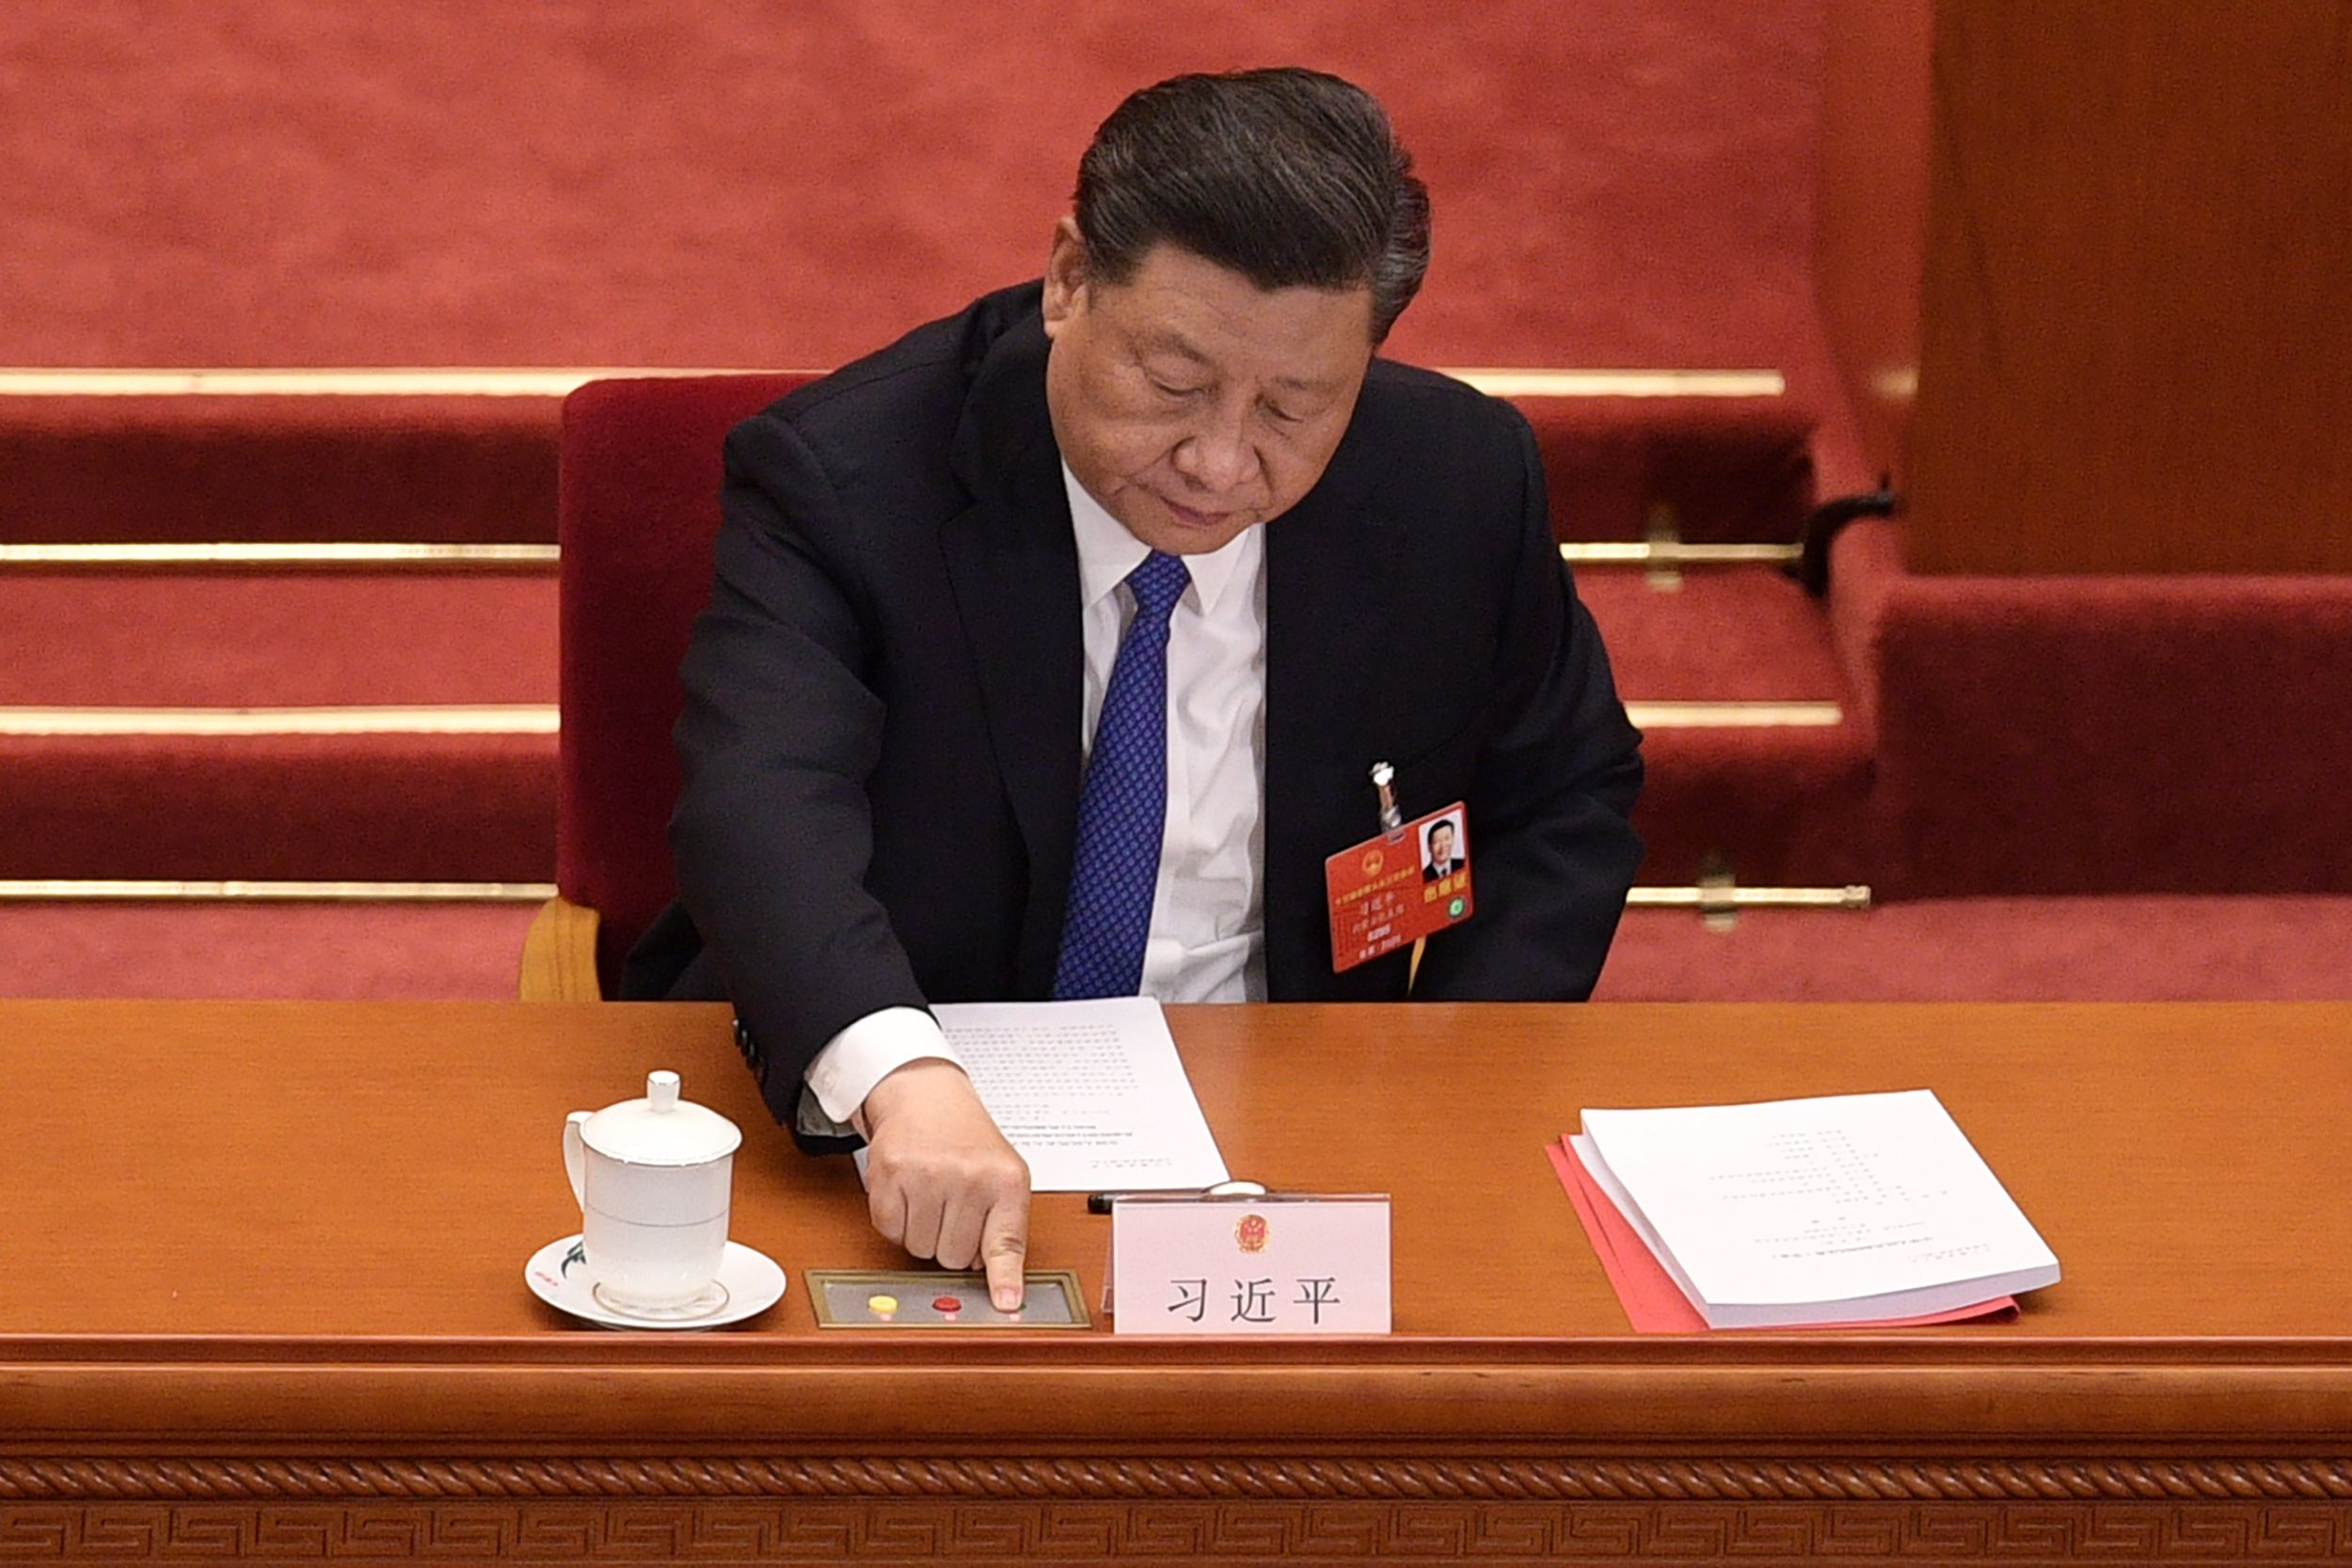 Chinese President Xi Jinping votes on a new draft security bill for Hong Kong at the Great Hall of the People in Beijing, China on May 28, 2020.